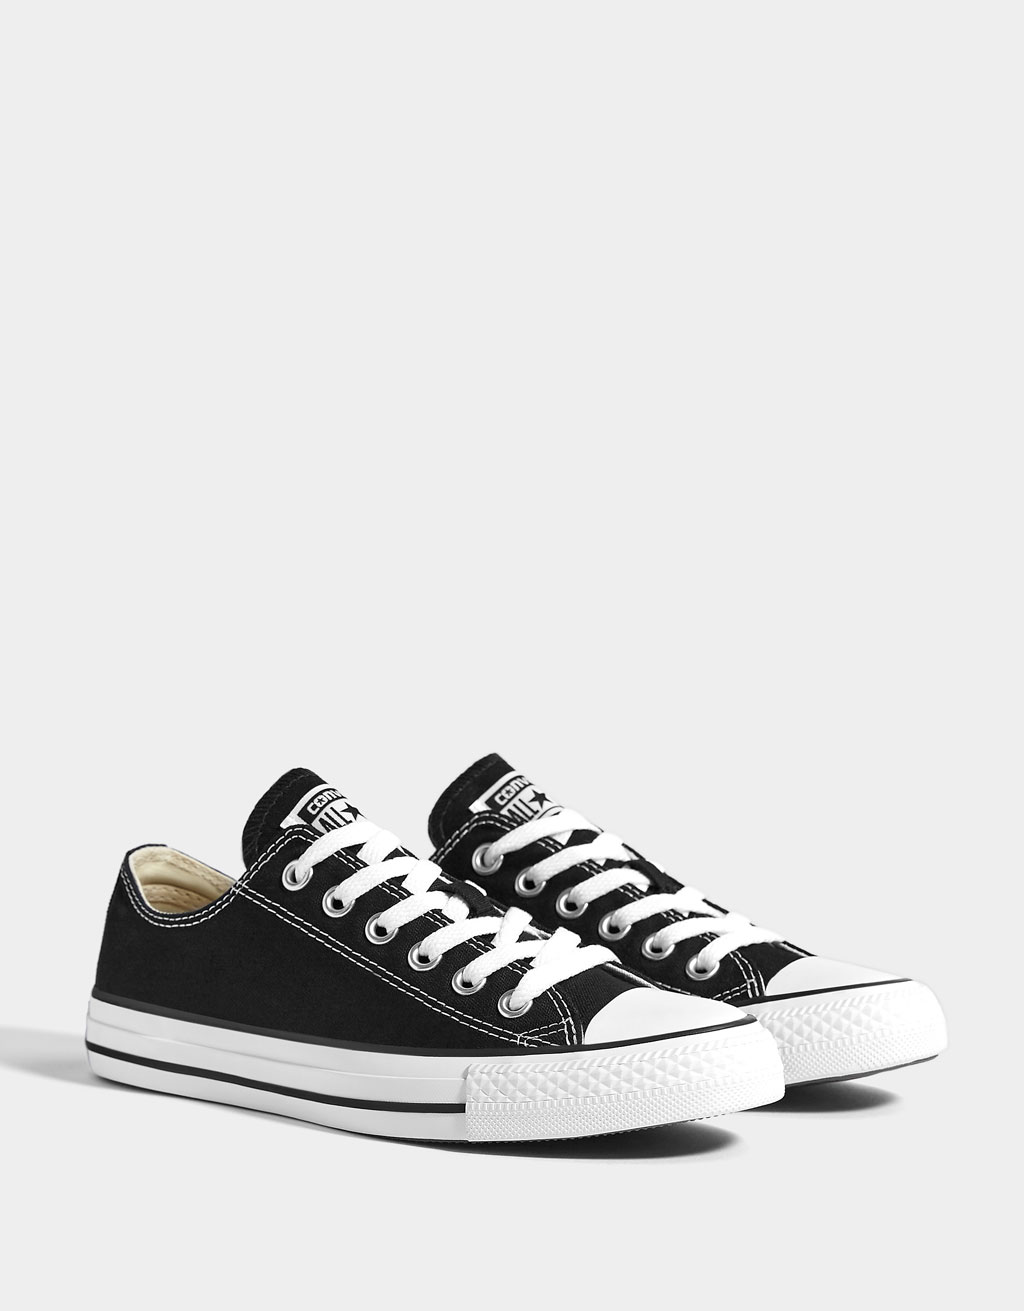 converse all star homme hiver